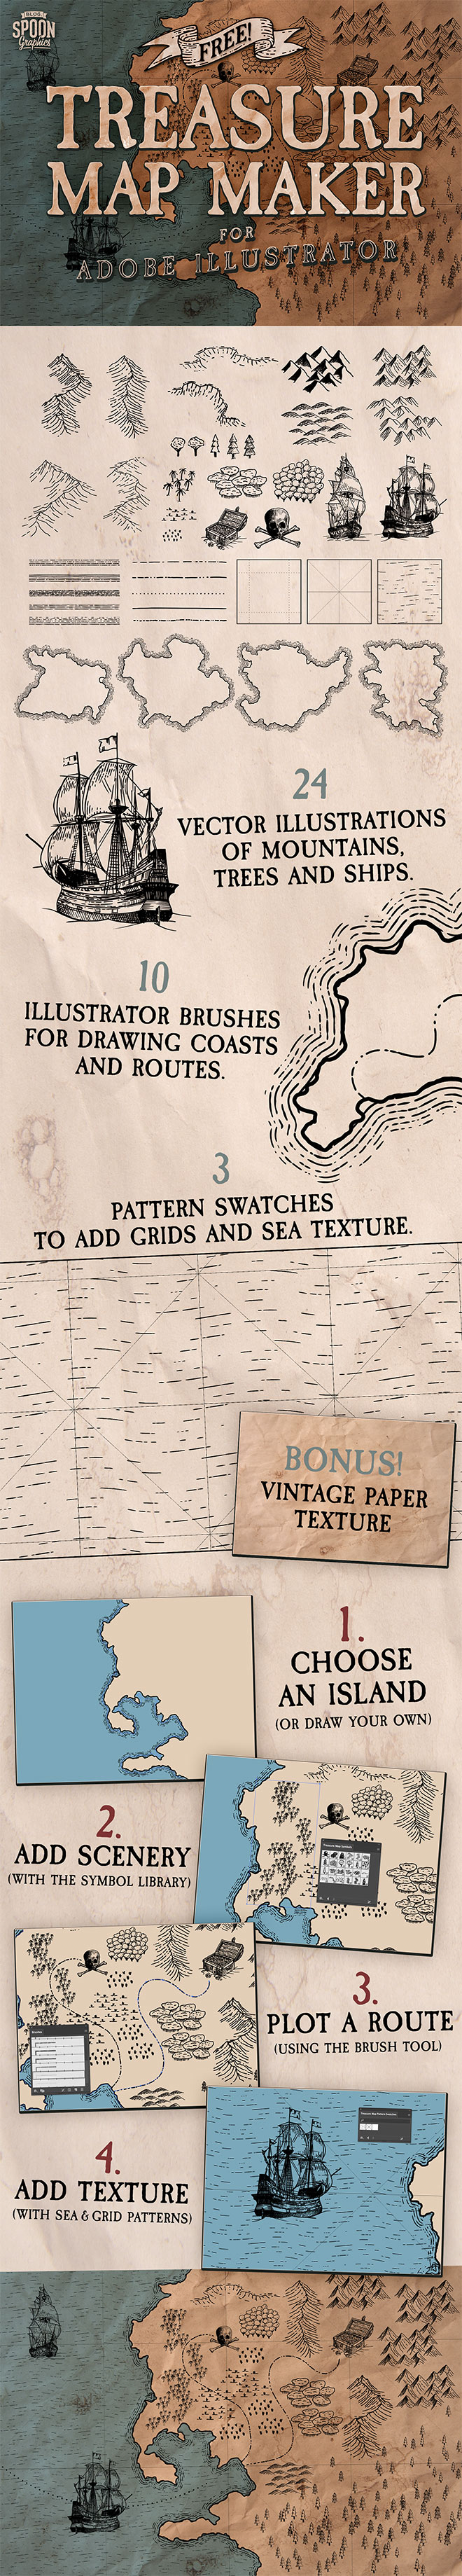 Download My Free Treasure Map Maker for Adobe Illustrator